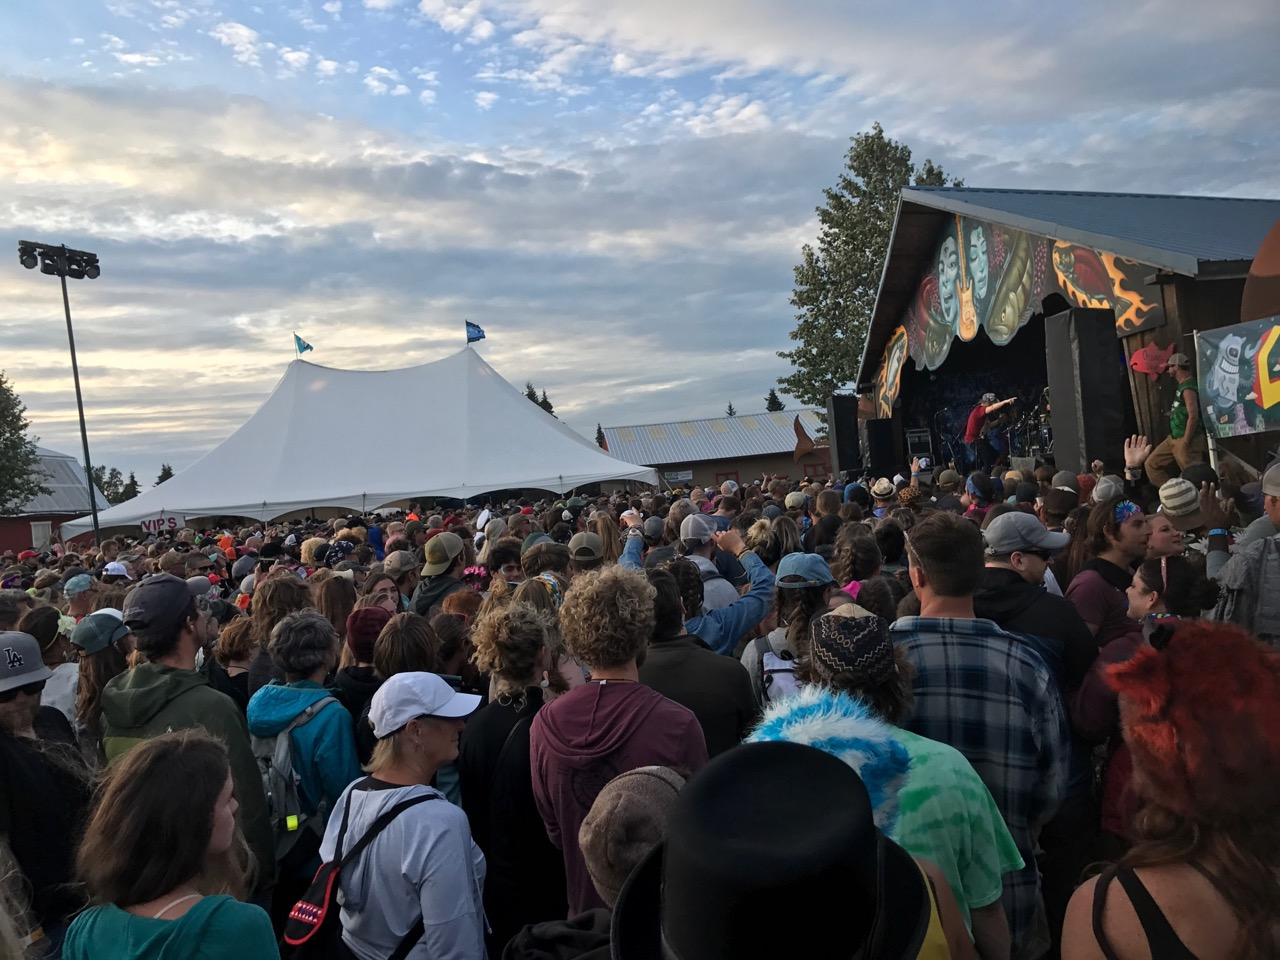 The Ocean stage always drew the crowds for amazing music!